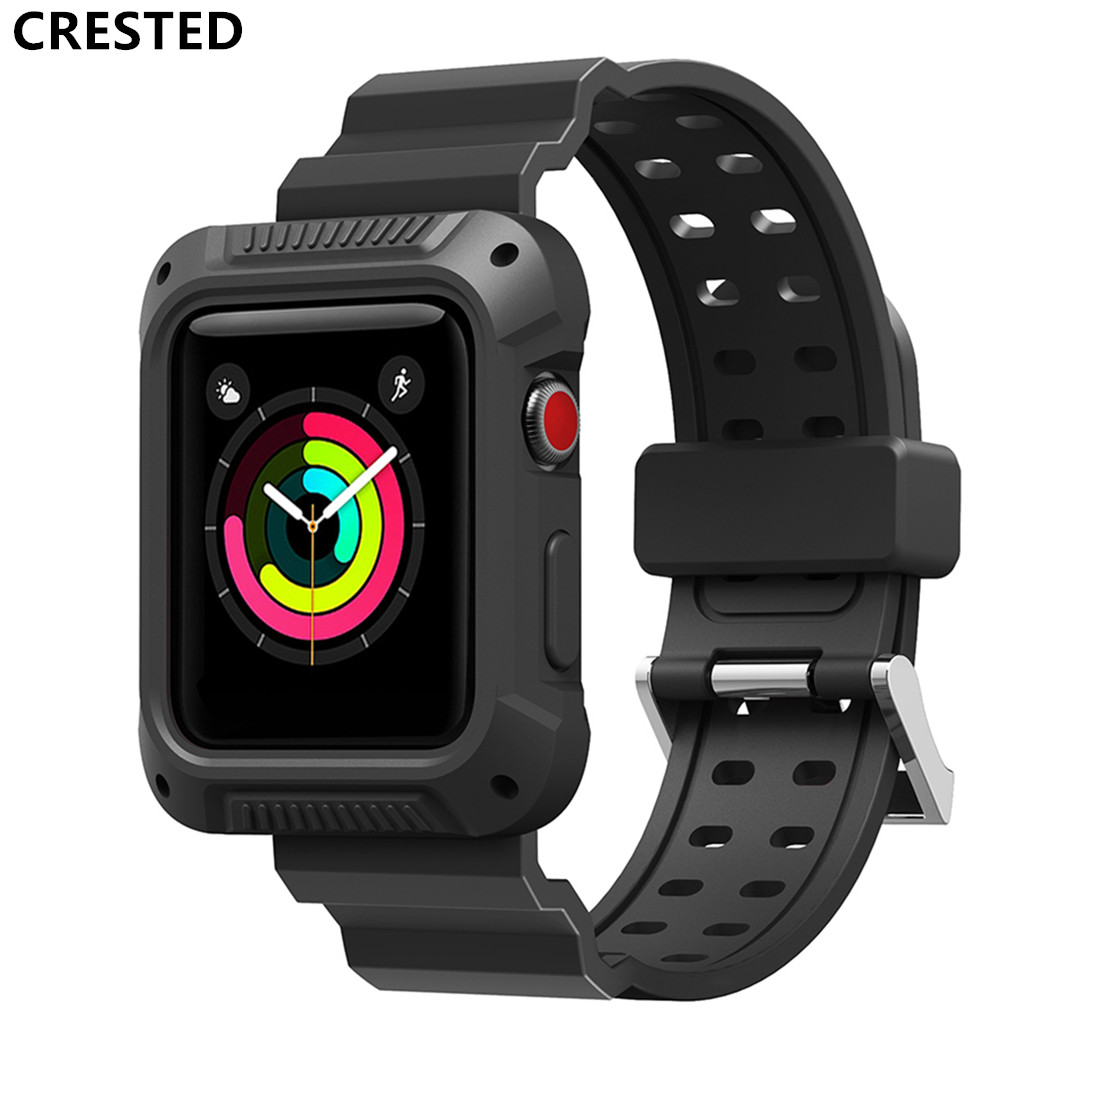 Case+ Strap For Apple Watch Band Pulseira Apple Watch 4 3 5 Band 44mm 40mm Iwatch 42mm/38mm Correa Protective Cover